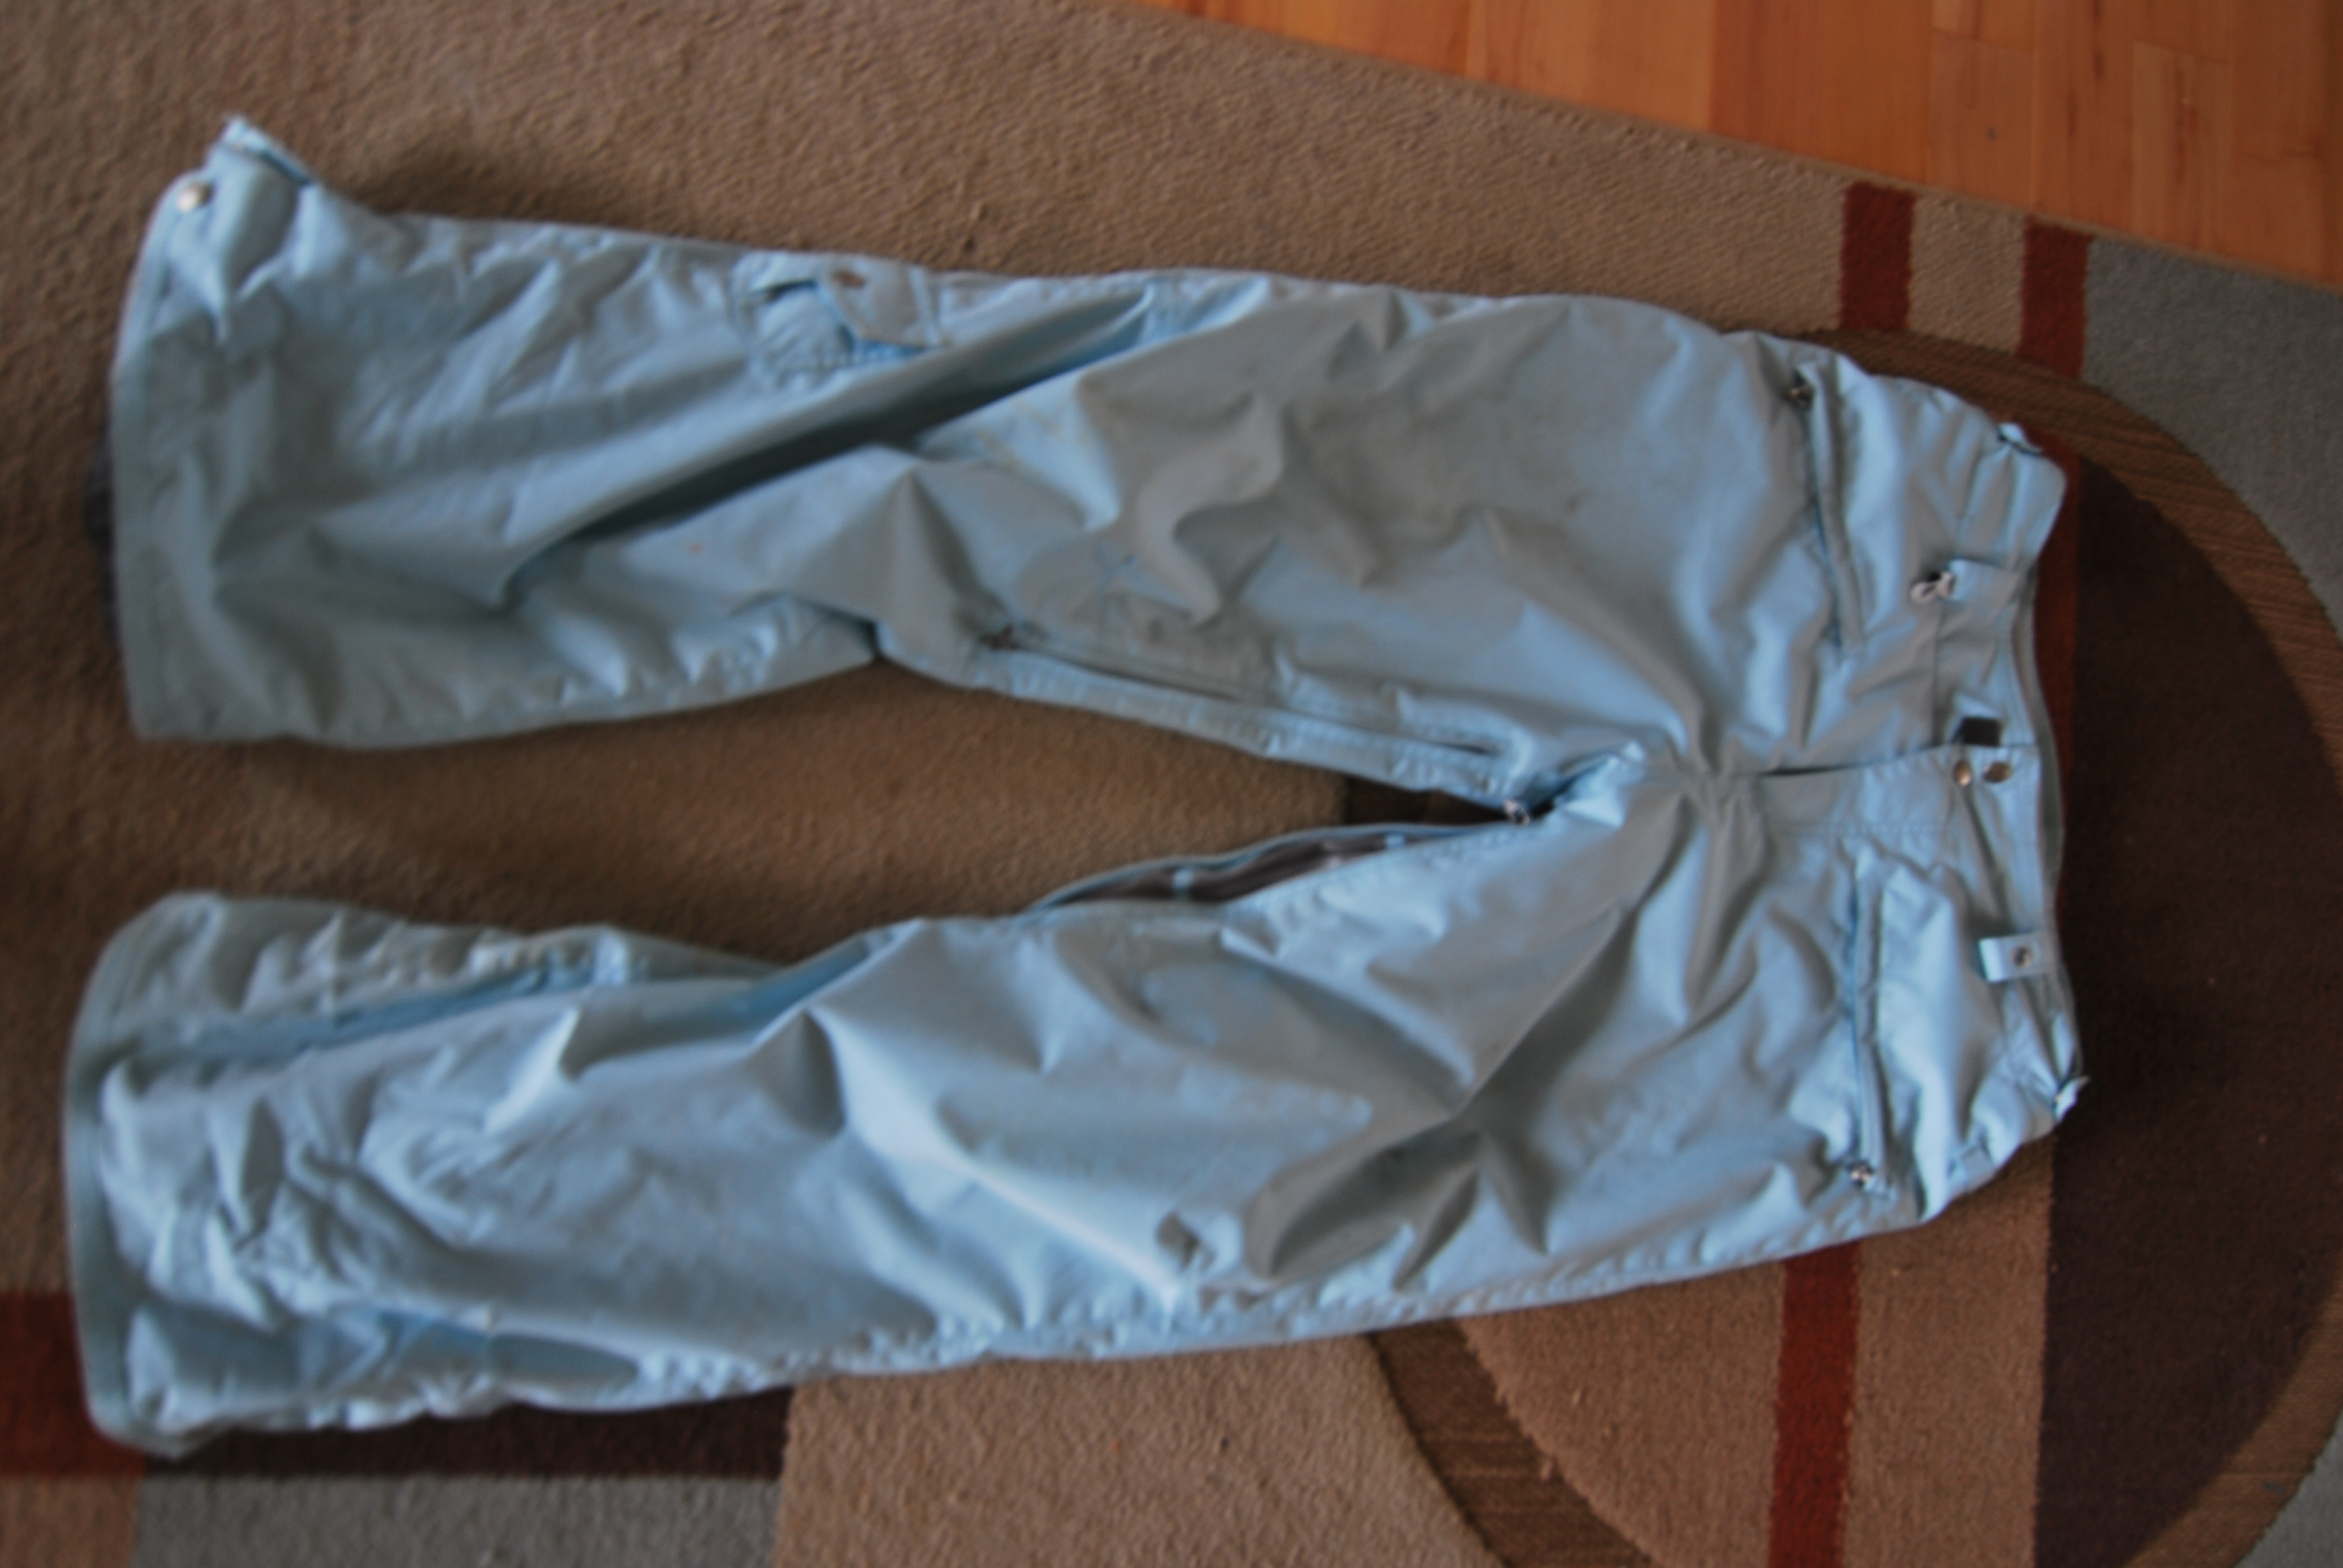 686 pants for sale.